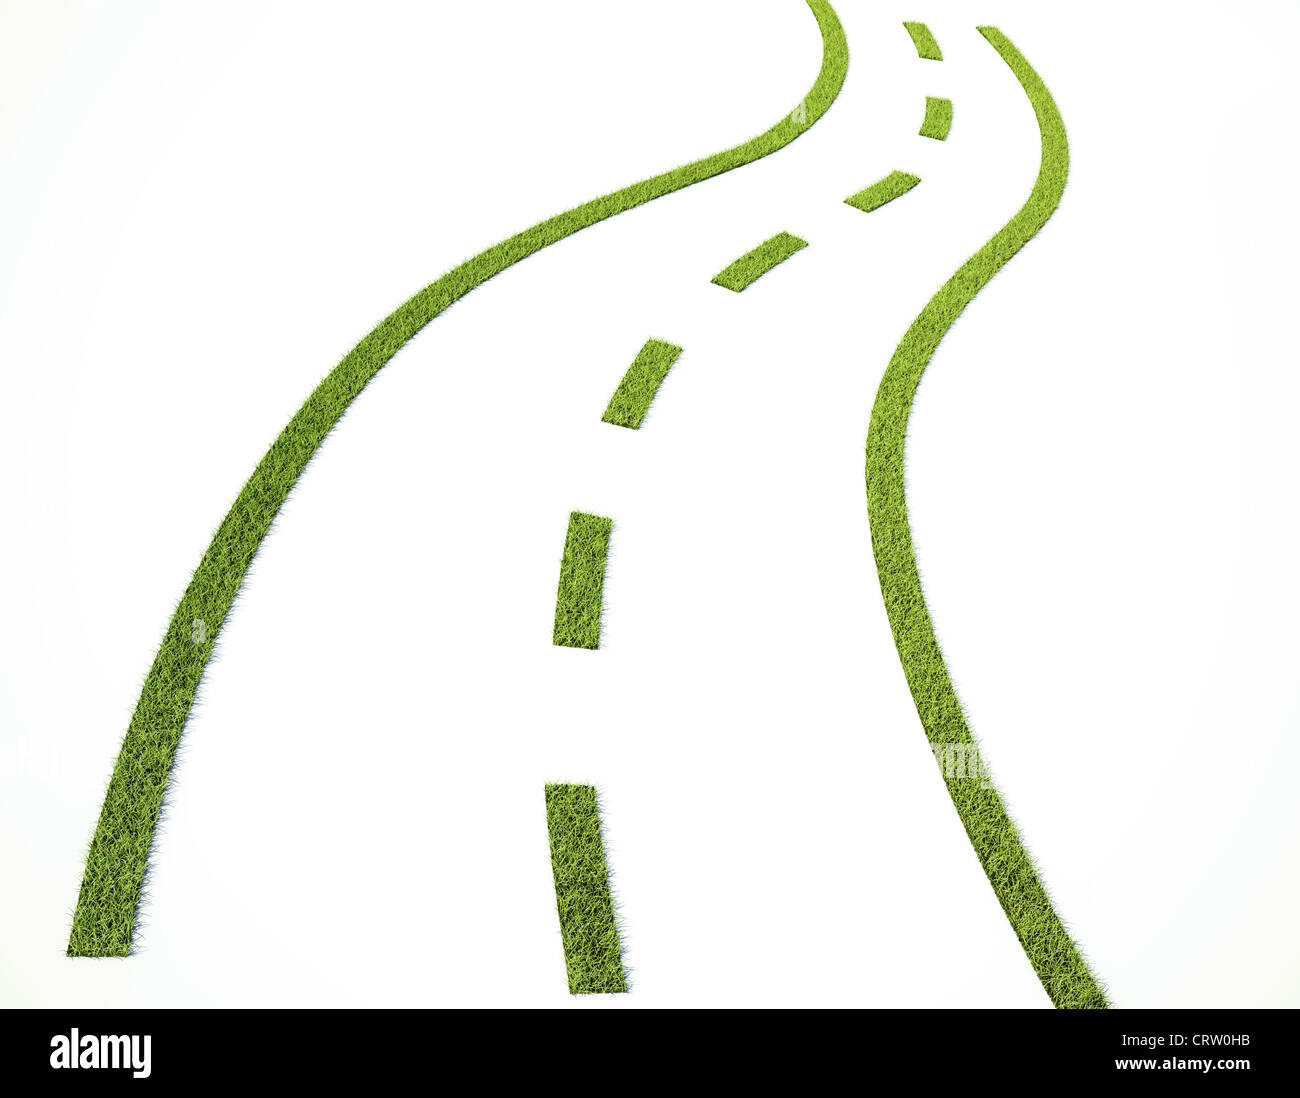 Grass road - sustainable transport - Stock Image